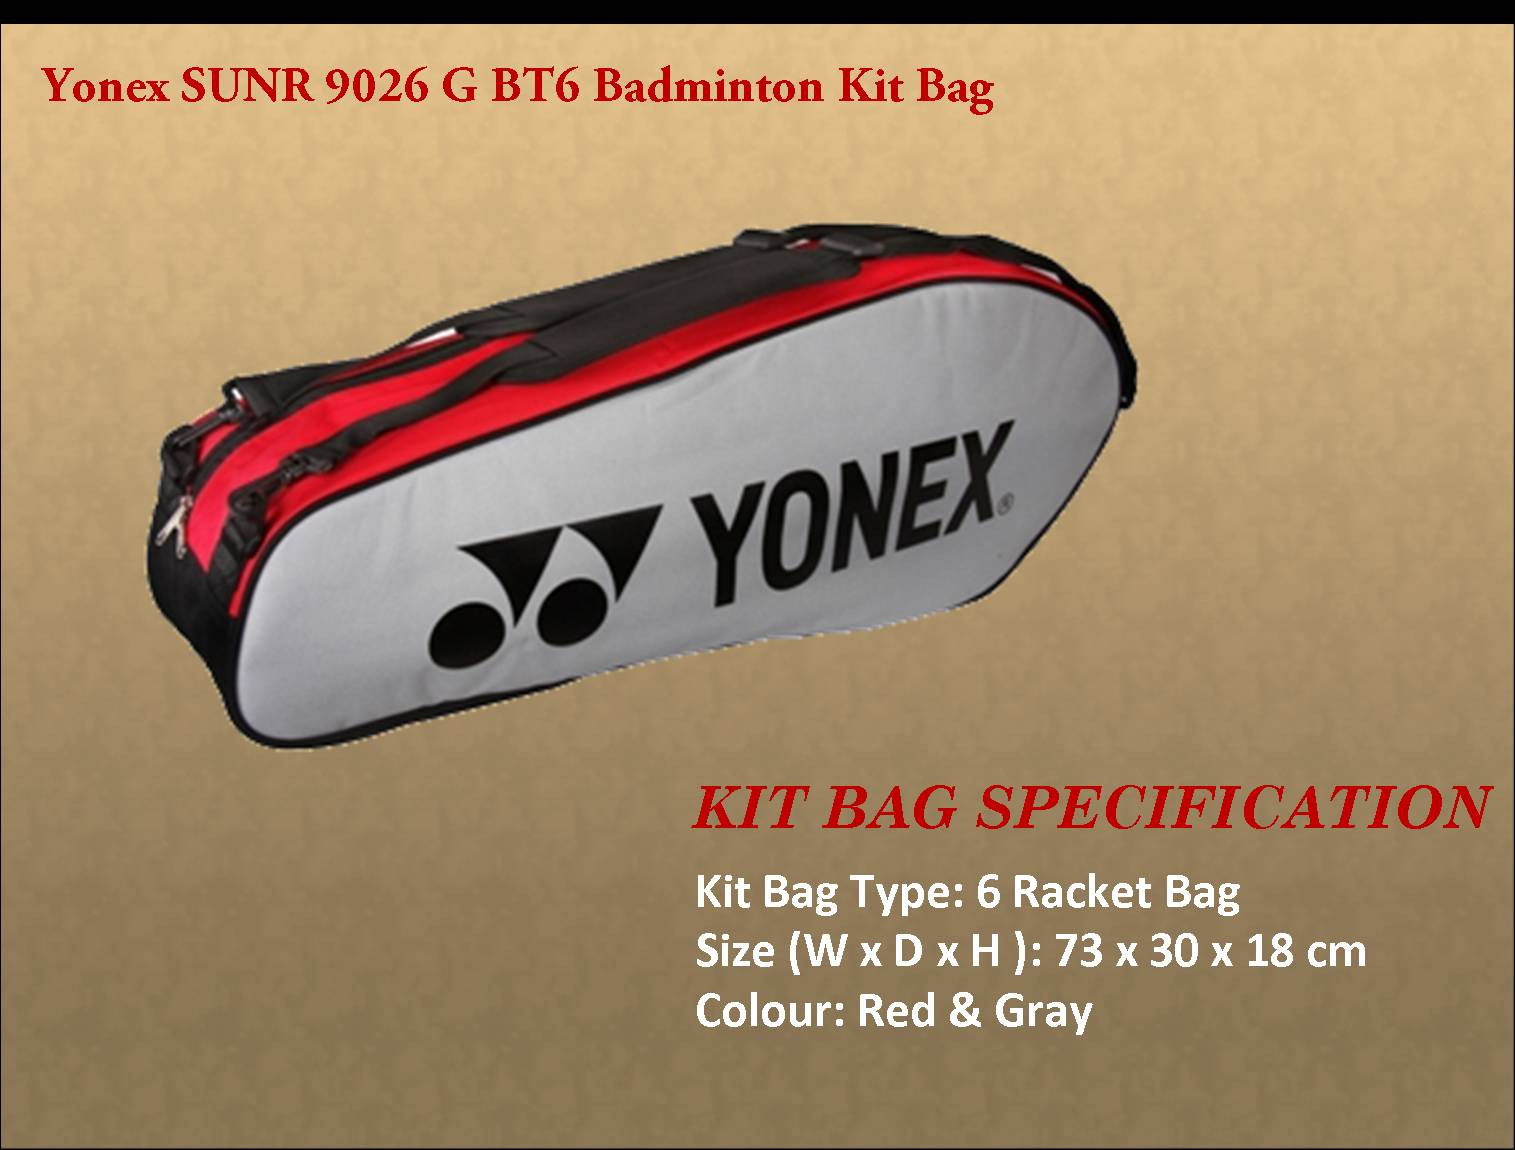 Yonex SUNR 9026 G BT6 Badminton Kit Bag